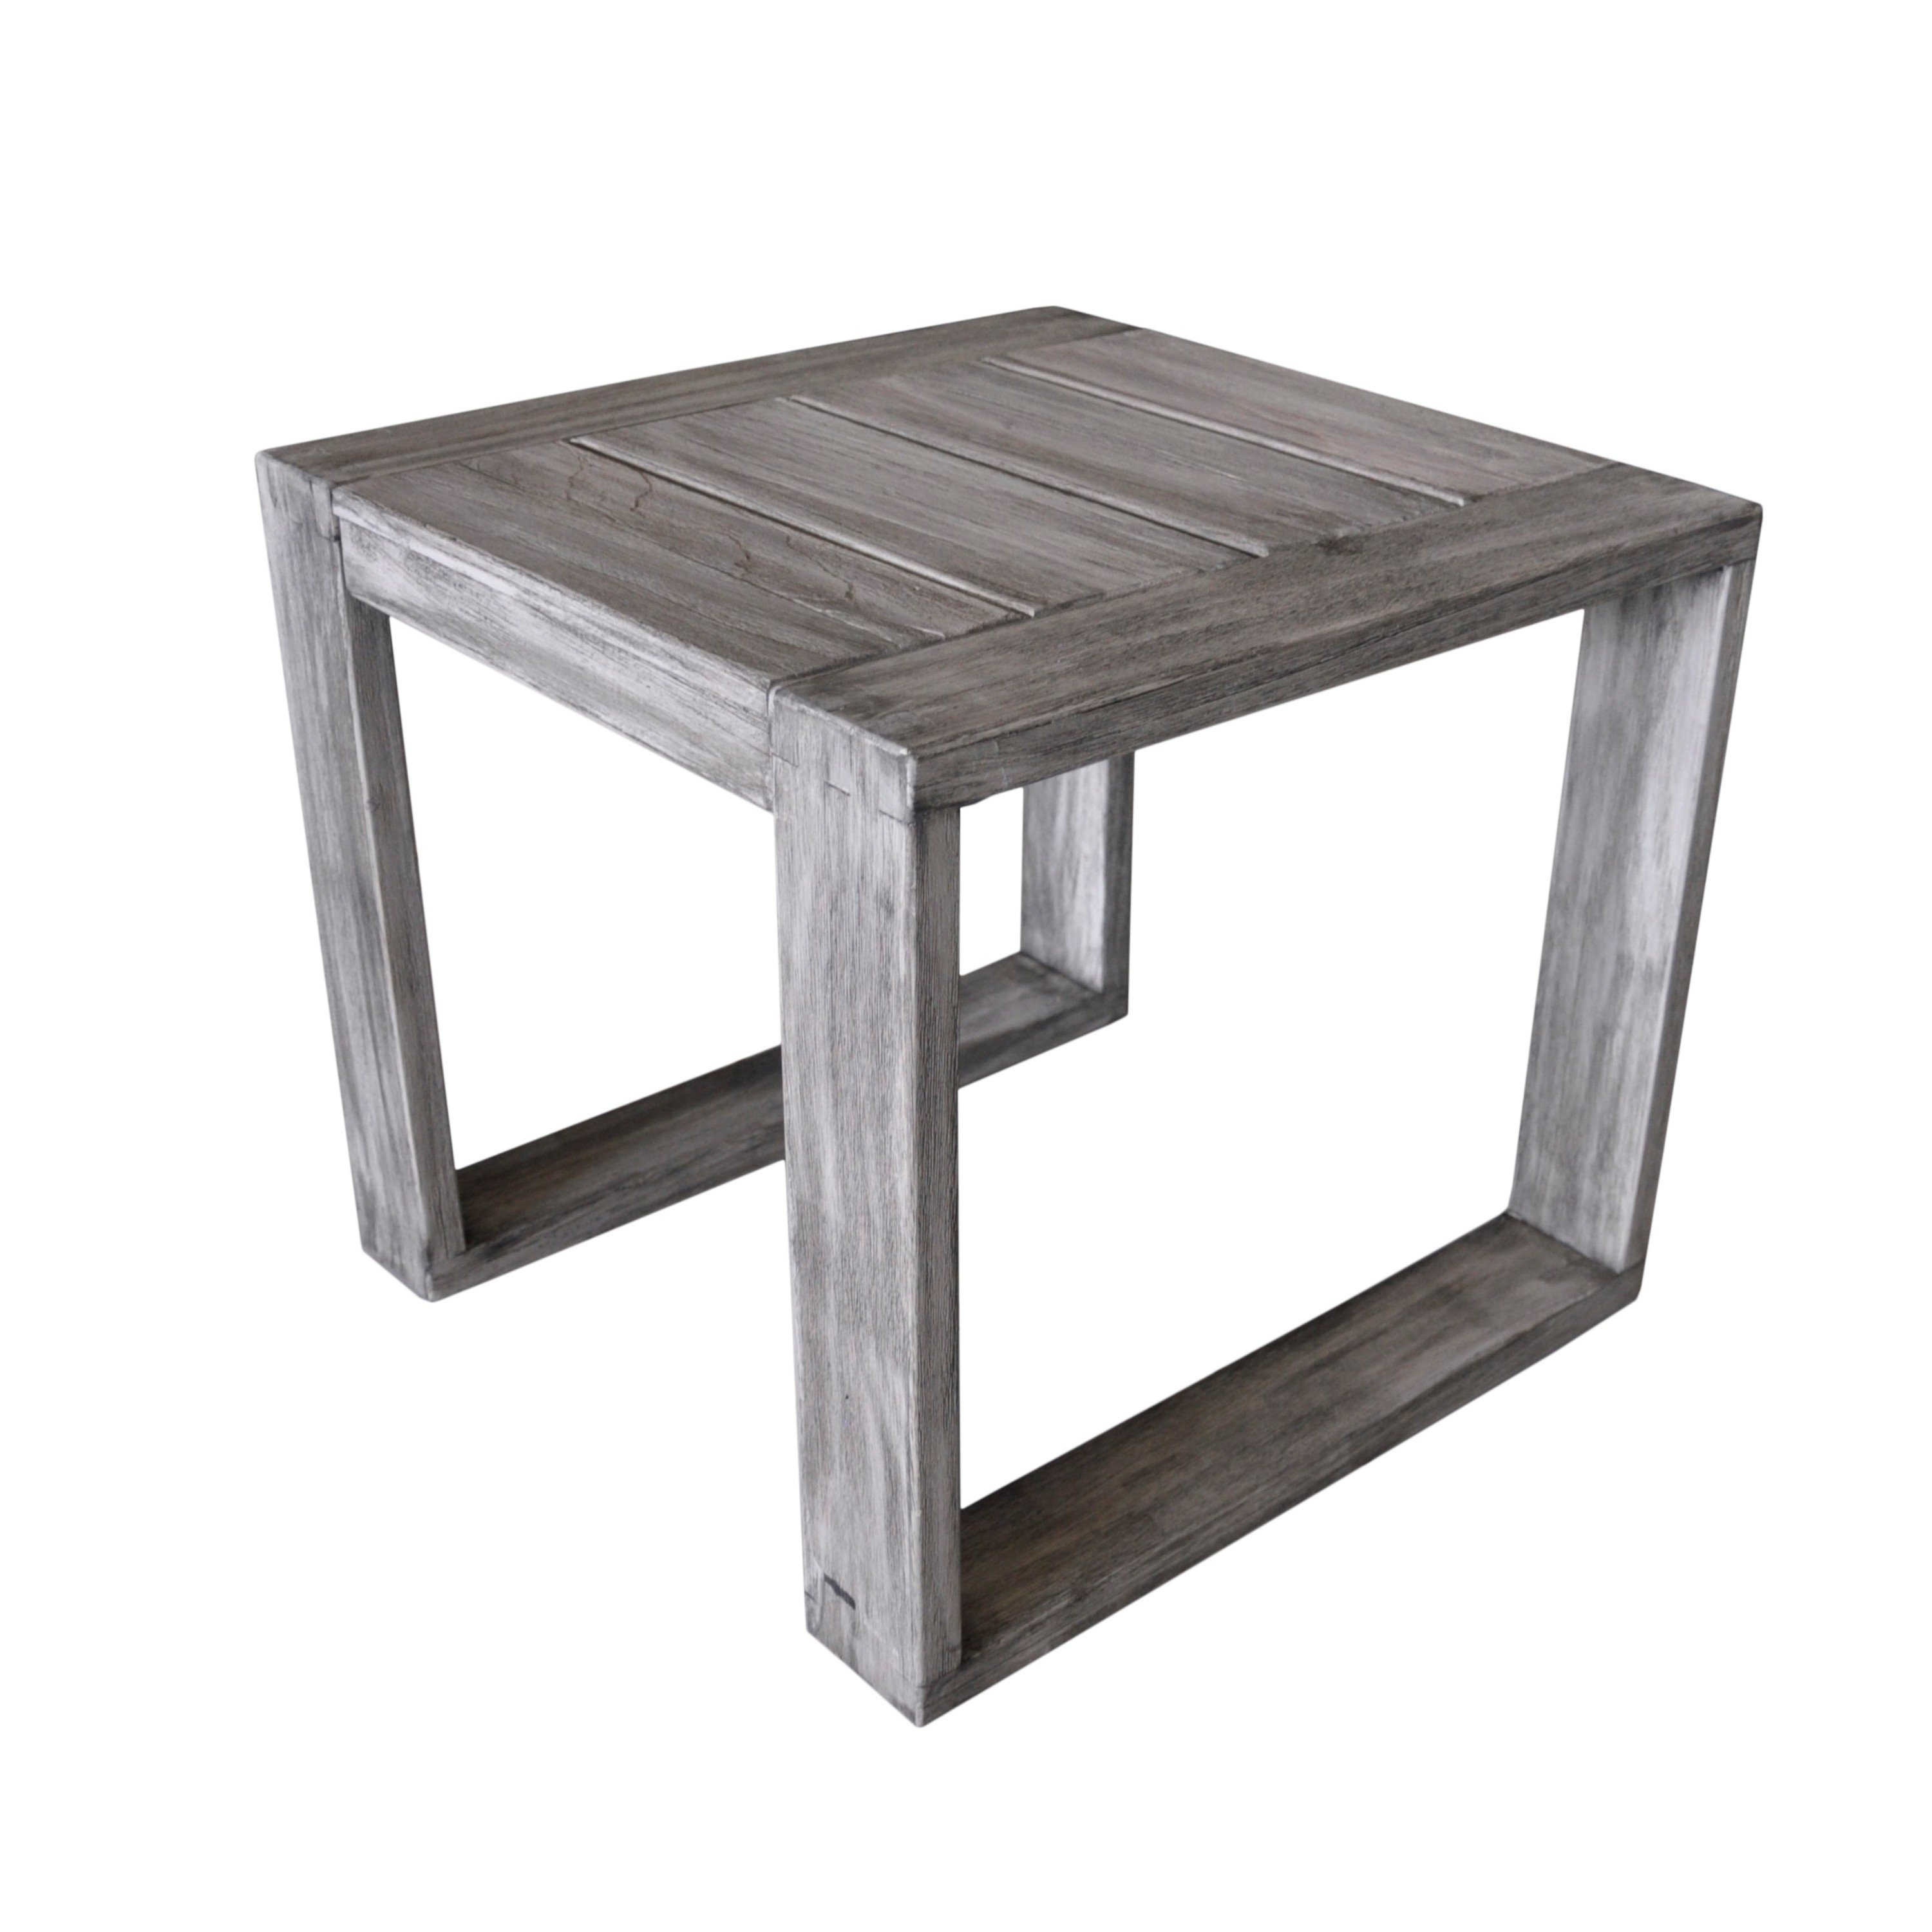 courtyard casual driftwood gray teak north shore outdoor side table cover threshold gold accent white unique foyer tables nautical kitchen decor cordless floor lamps for living